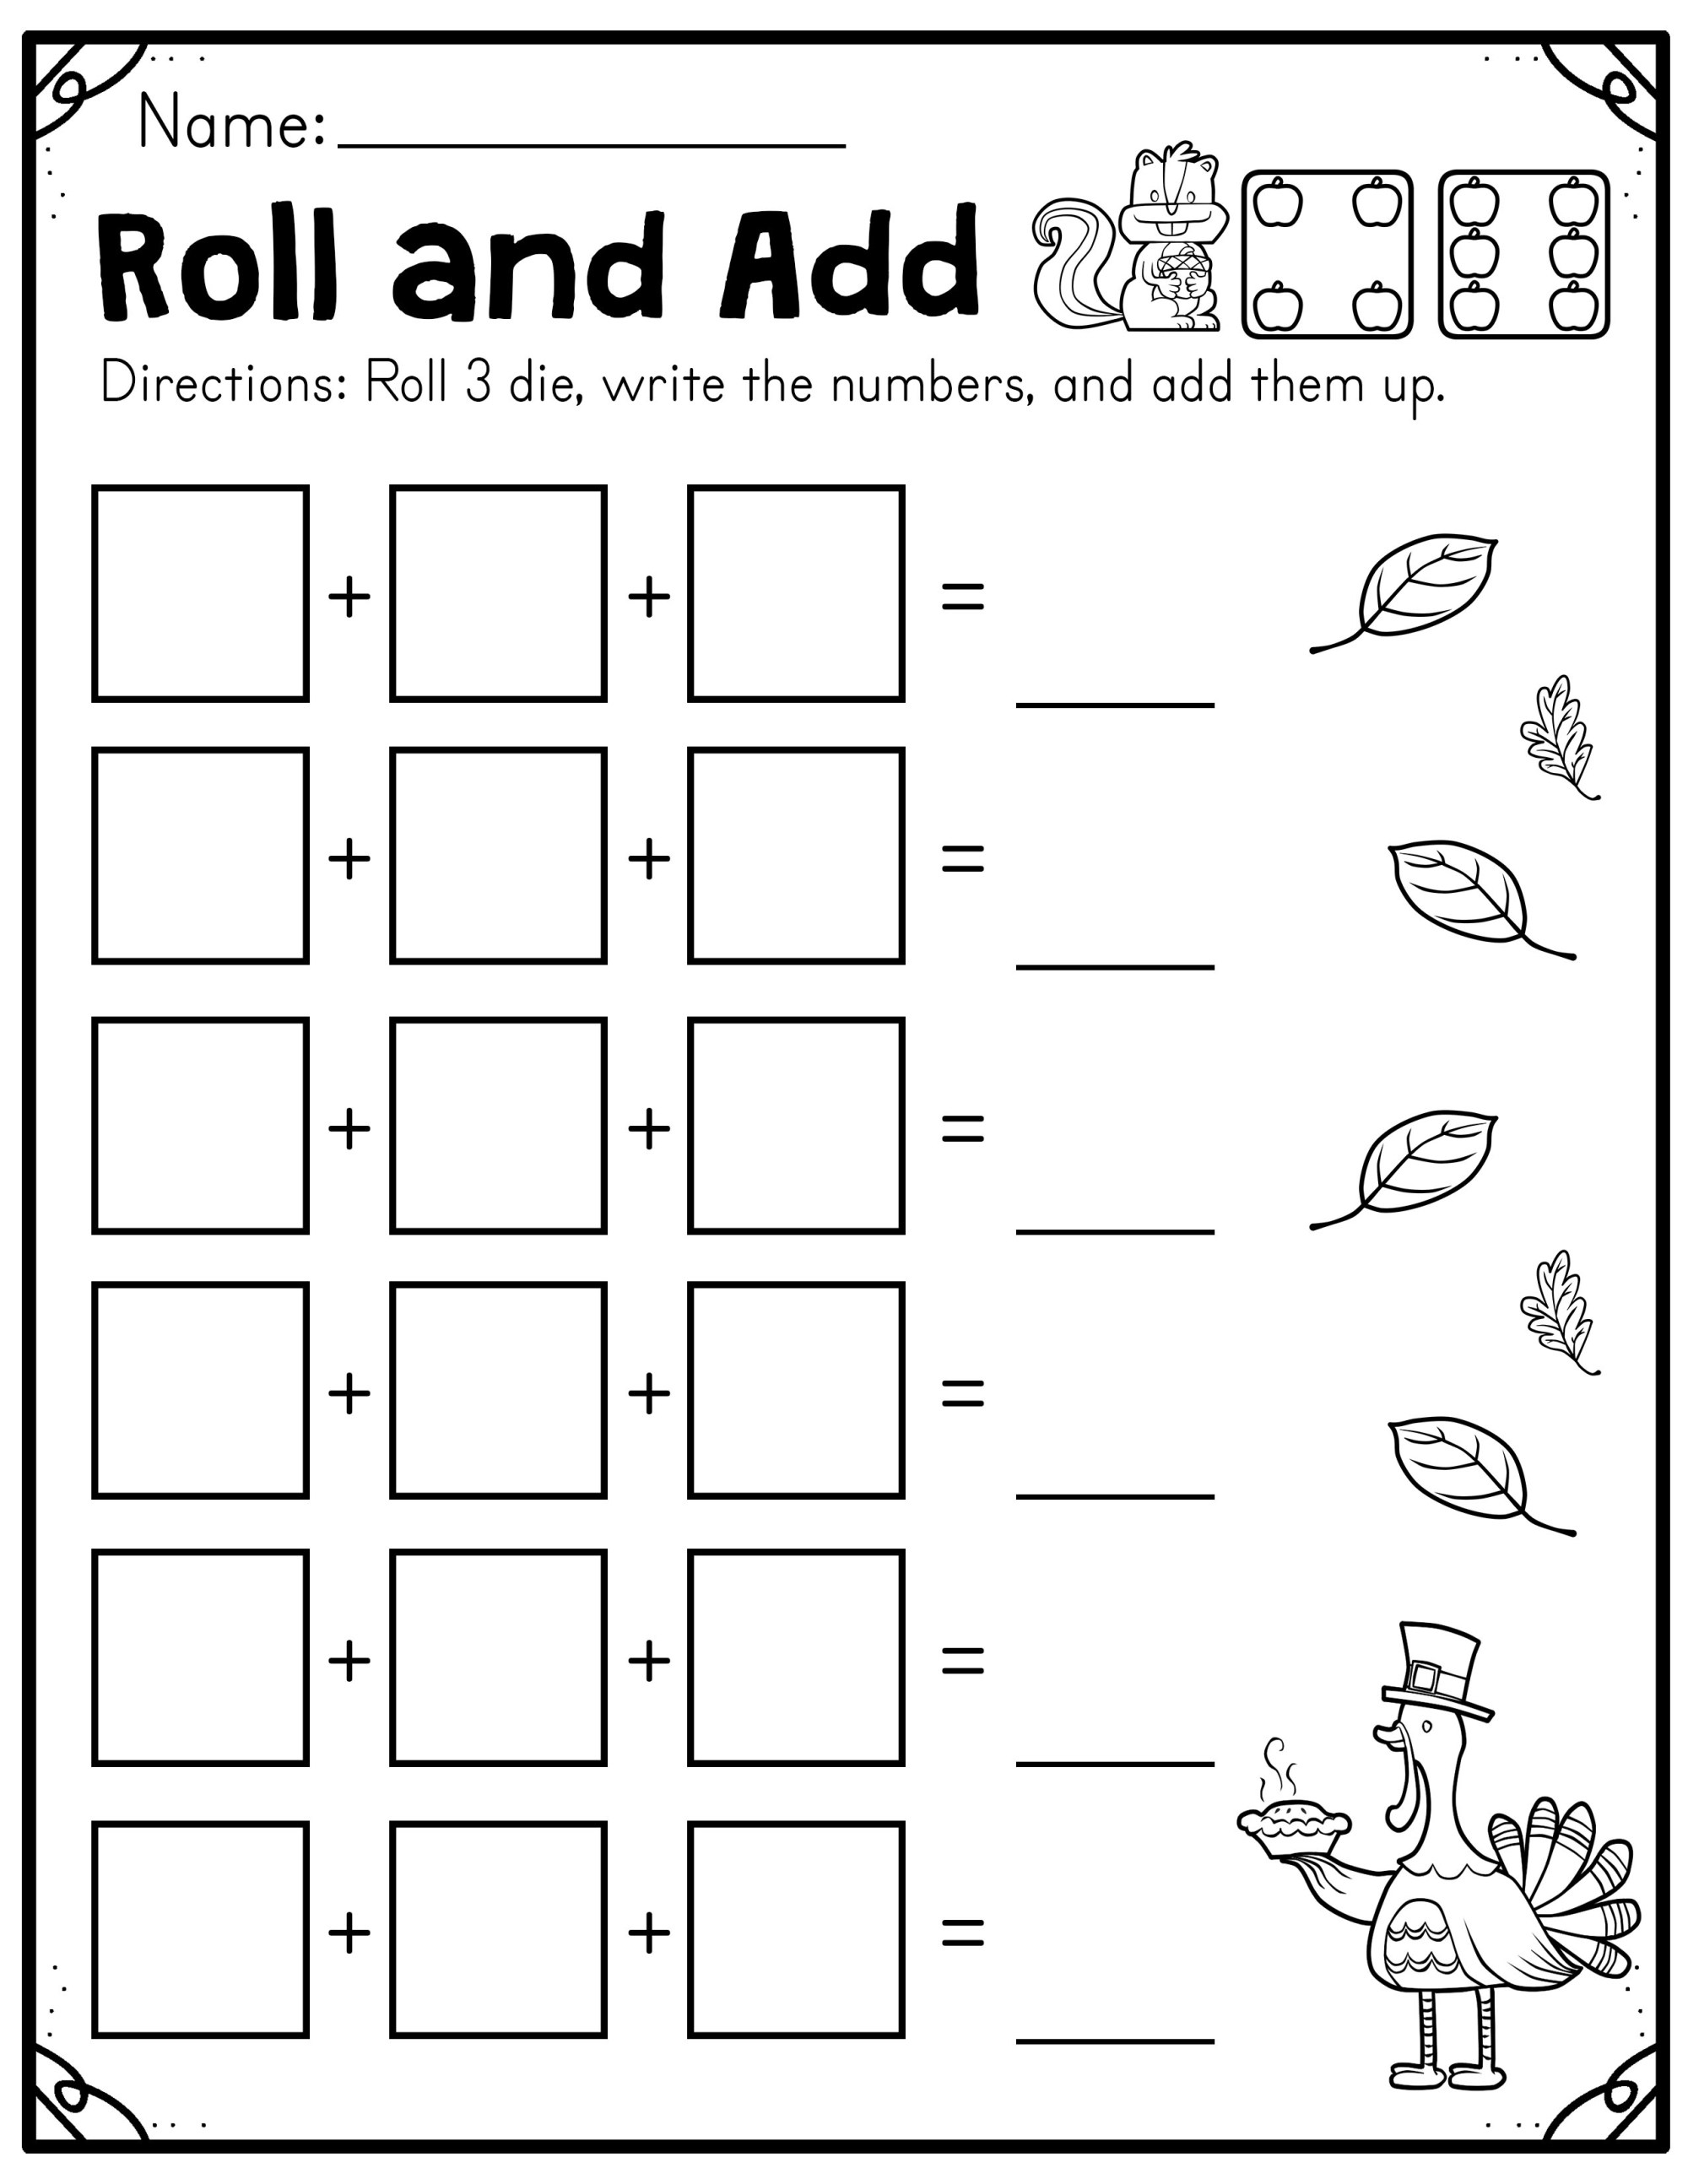 hight resolution of Fall Roll and Add Worksheet (First Grade) - Made By Teachers